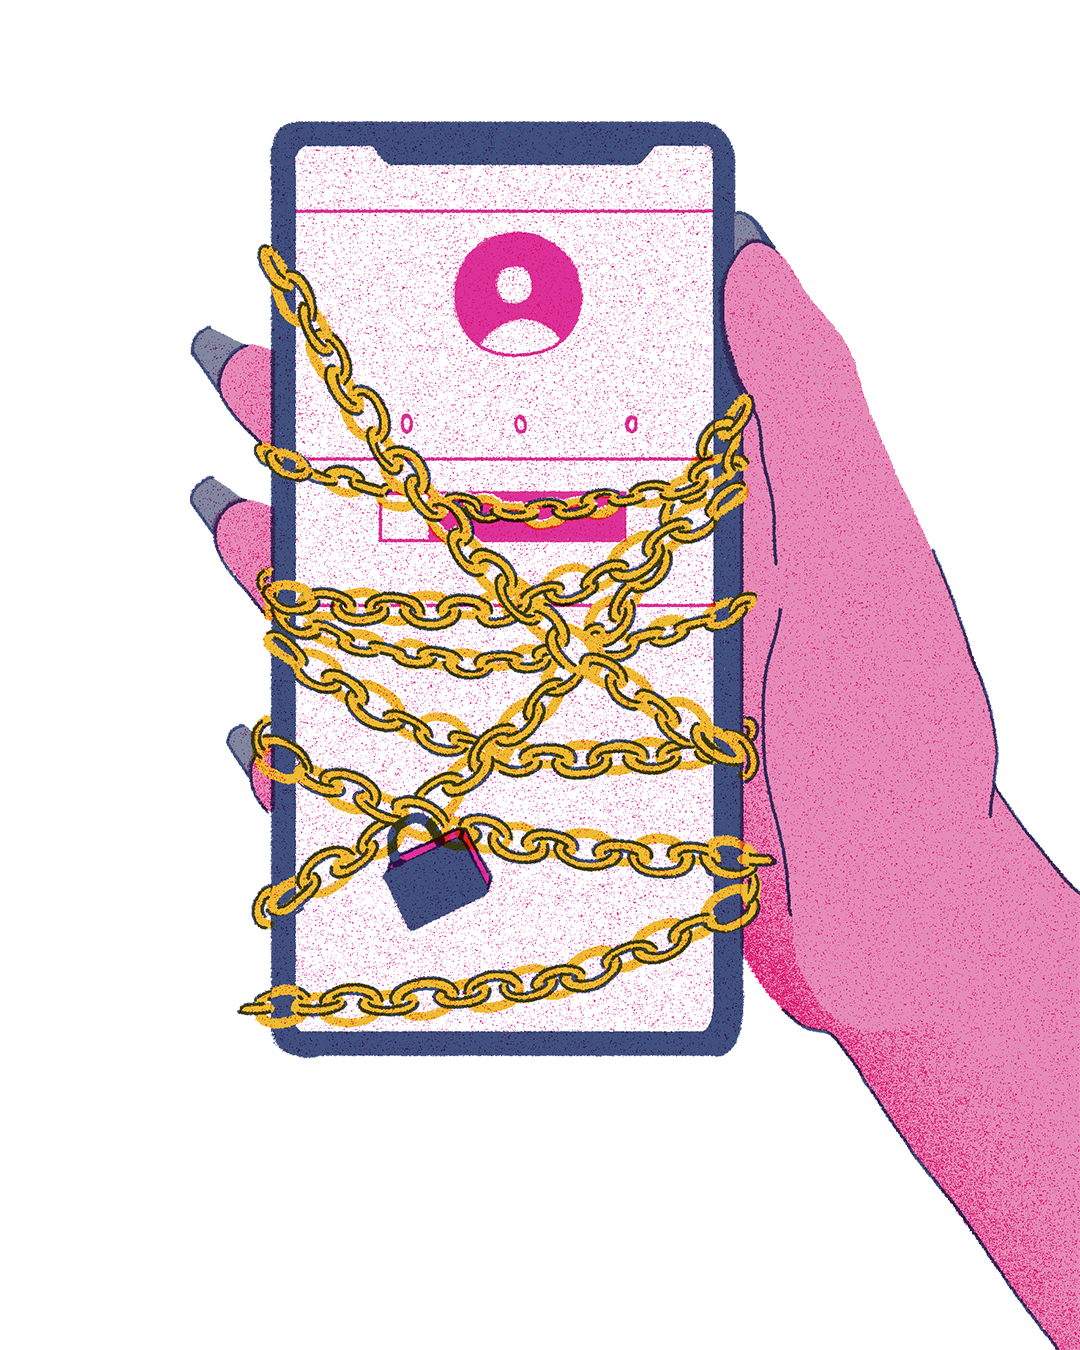 illustration of a hand with acrylic nails holding a cell phone